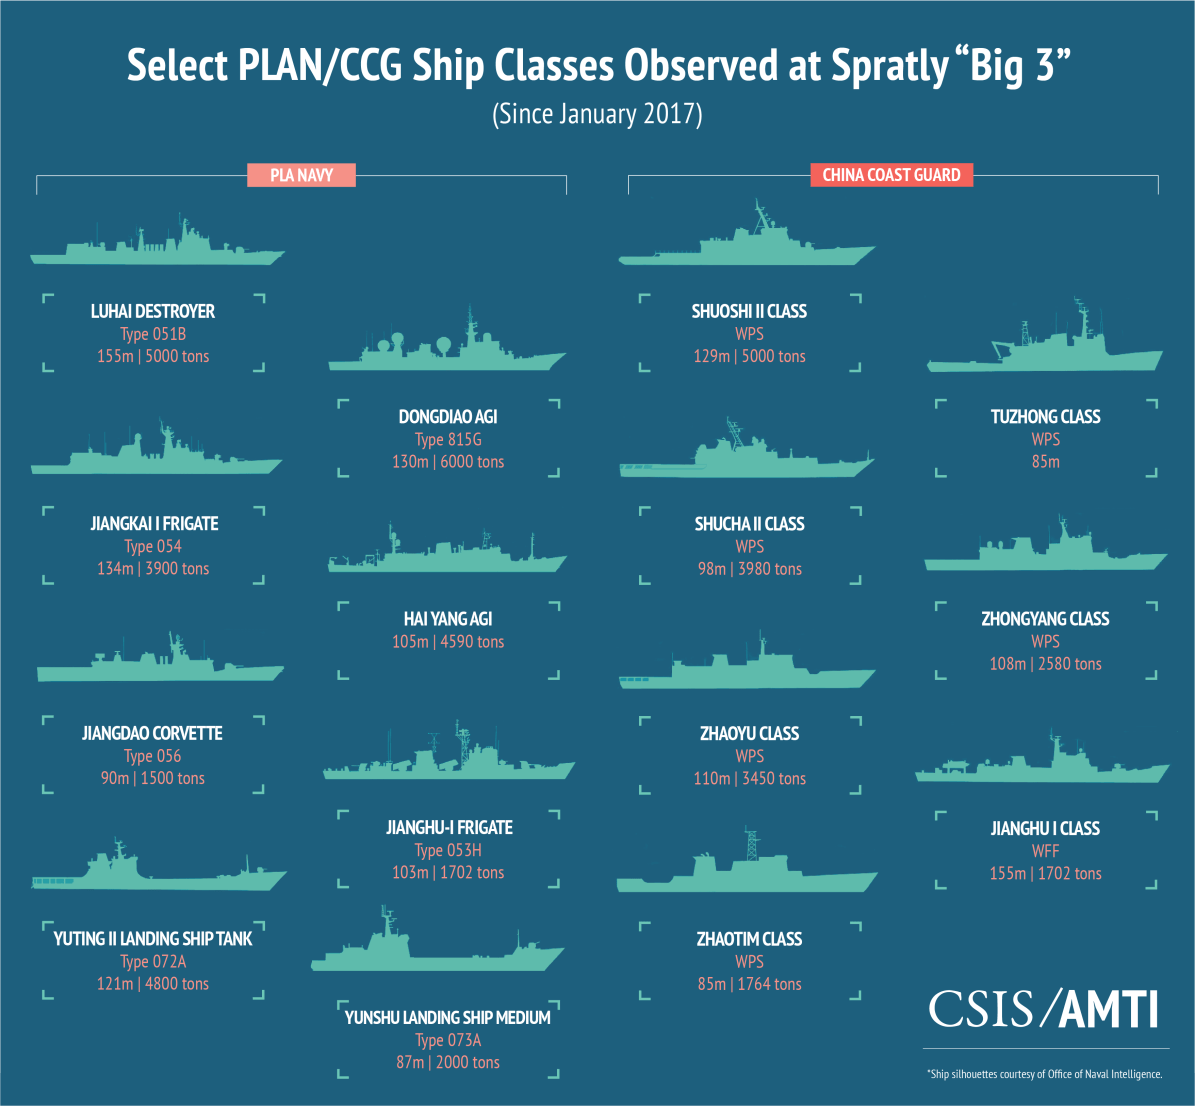 Select Plan and CCG Ship Classes Spratly Big 3 Jan 17